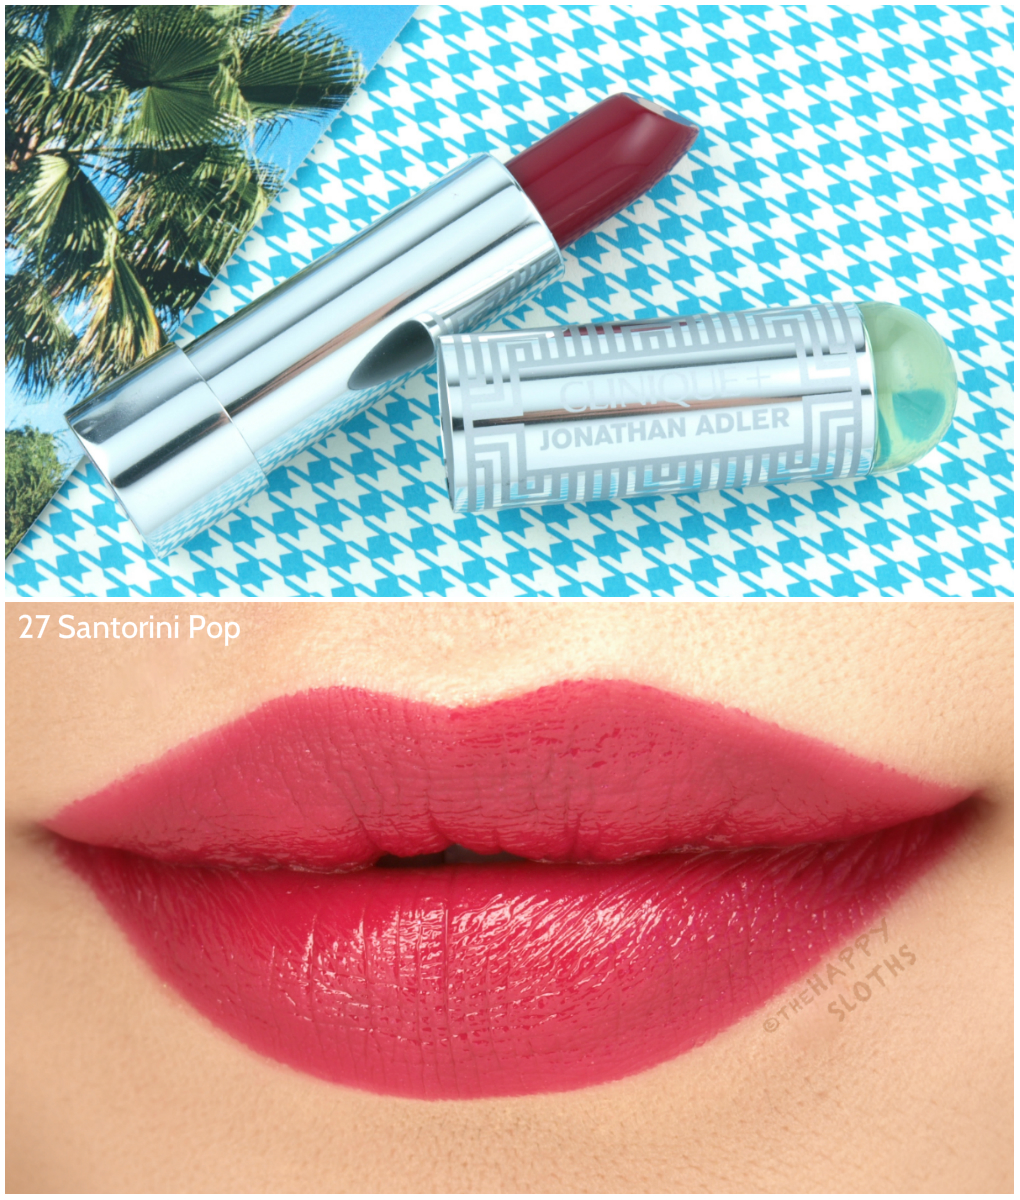 "Clinique + Jonathan Adler Collection | Lip Color + Primer Lipstick in ""27 Santorini Pop"": Review and Swatches"